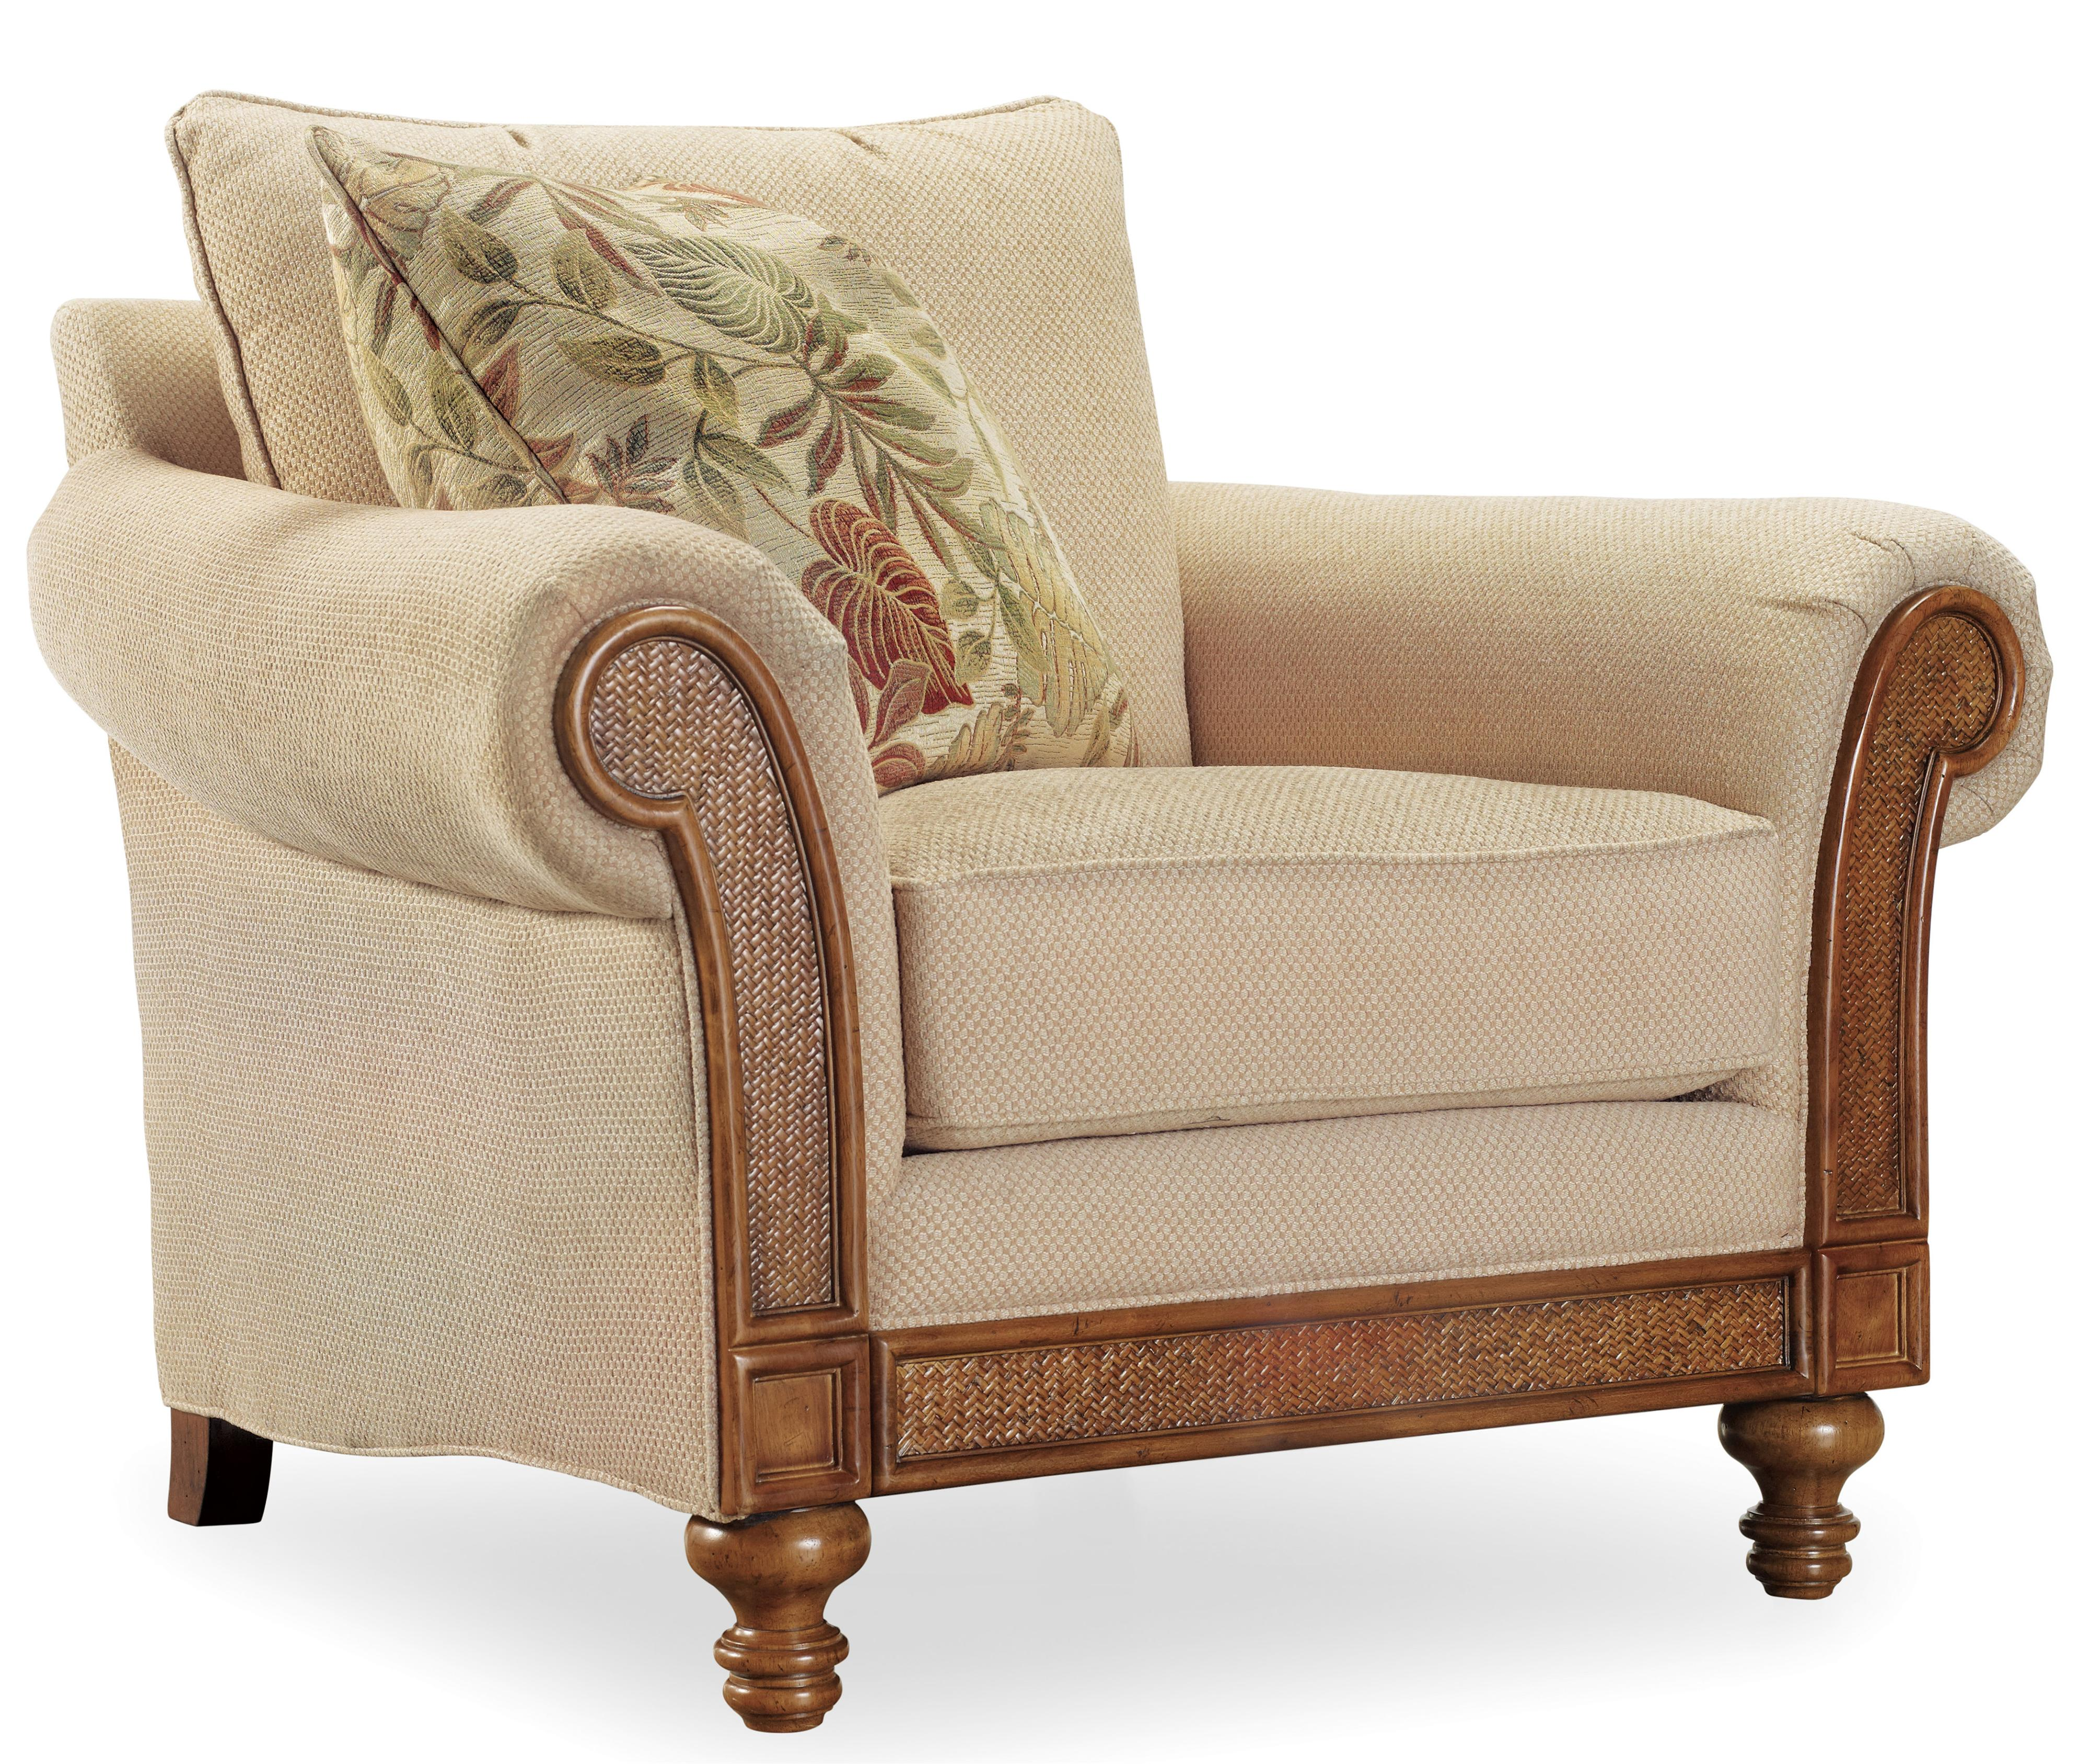 Hooker Furniture Windward 1125 Upholstered Rolled Arm Chair